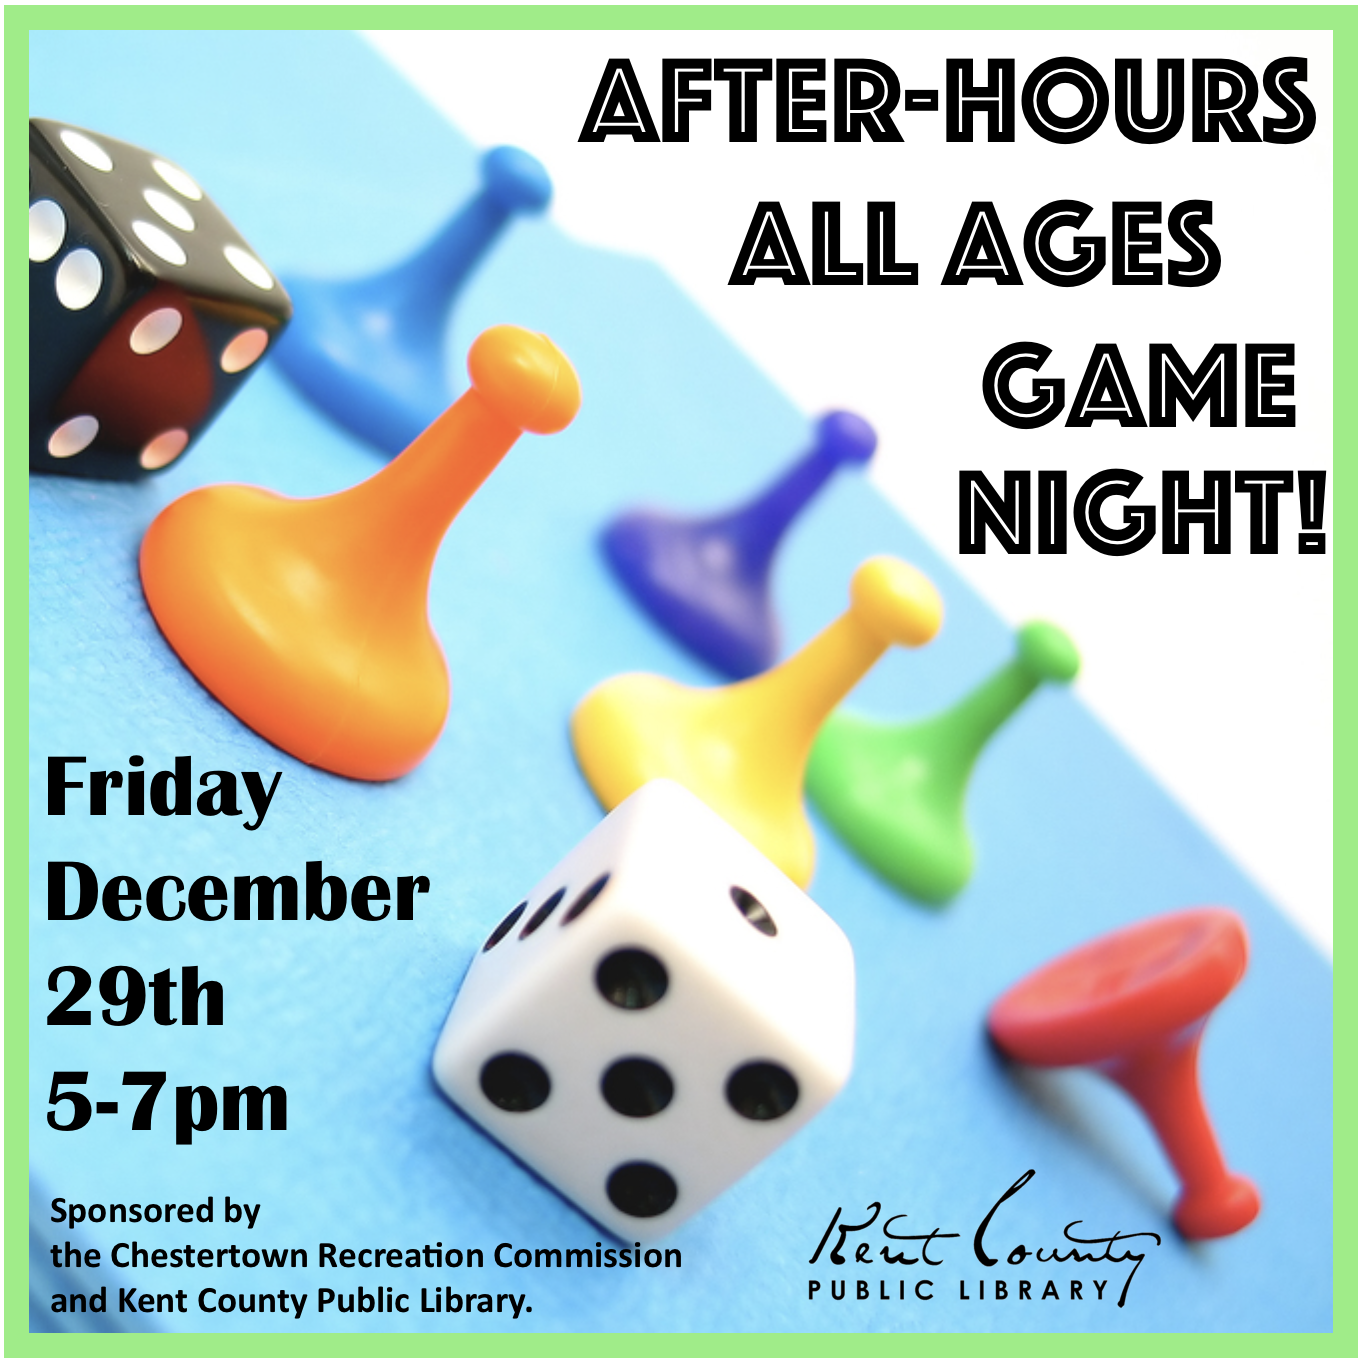 All Ages After - Hours Game Night!